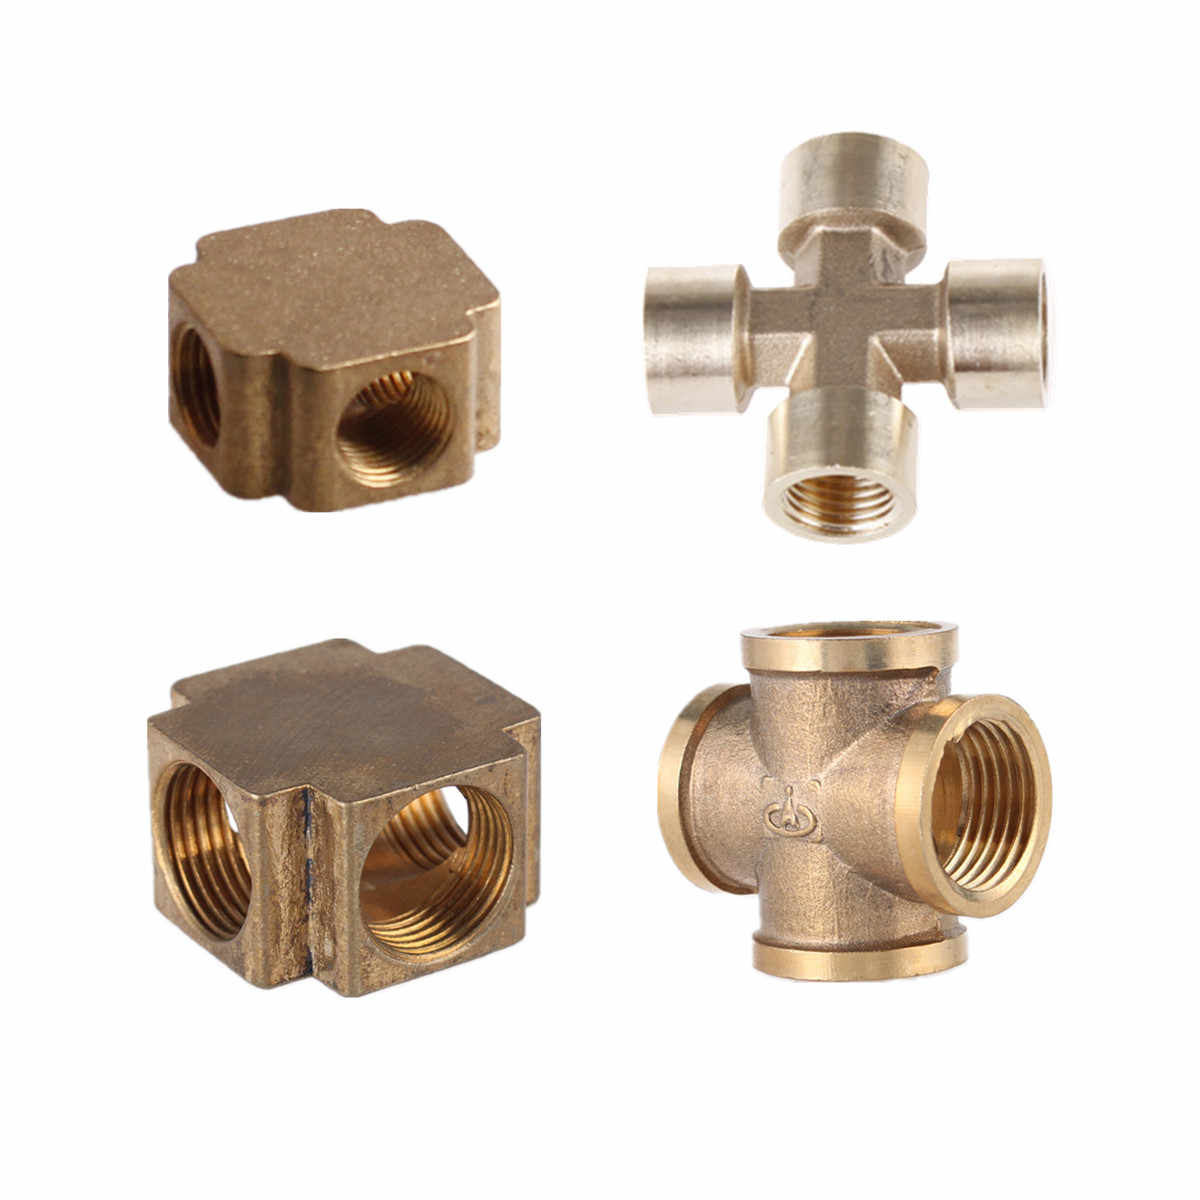 "Cross 4 Way 1/8"" 1/4"" 3/8"" 1/2"" BSP Female Thread Brass Pipe Fitting Copper Barbed Connector Coupler Adapter Coupling Air Water"